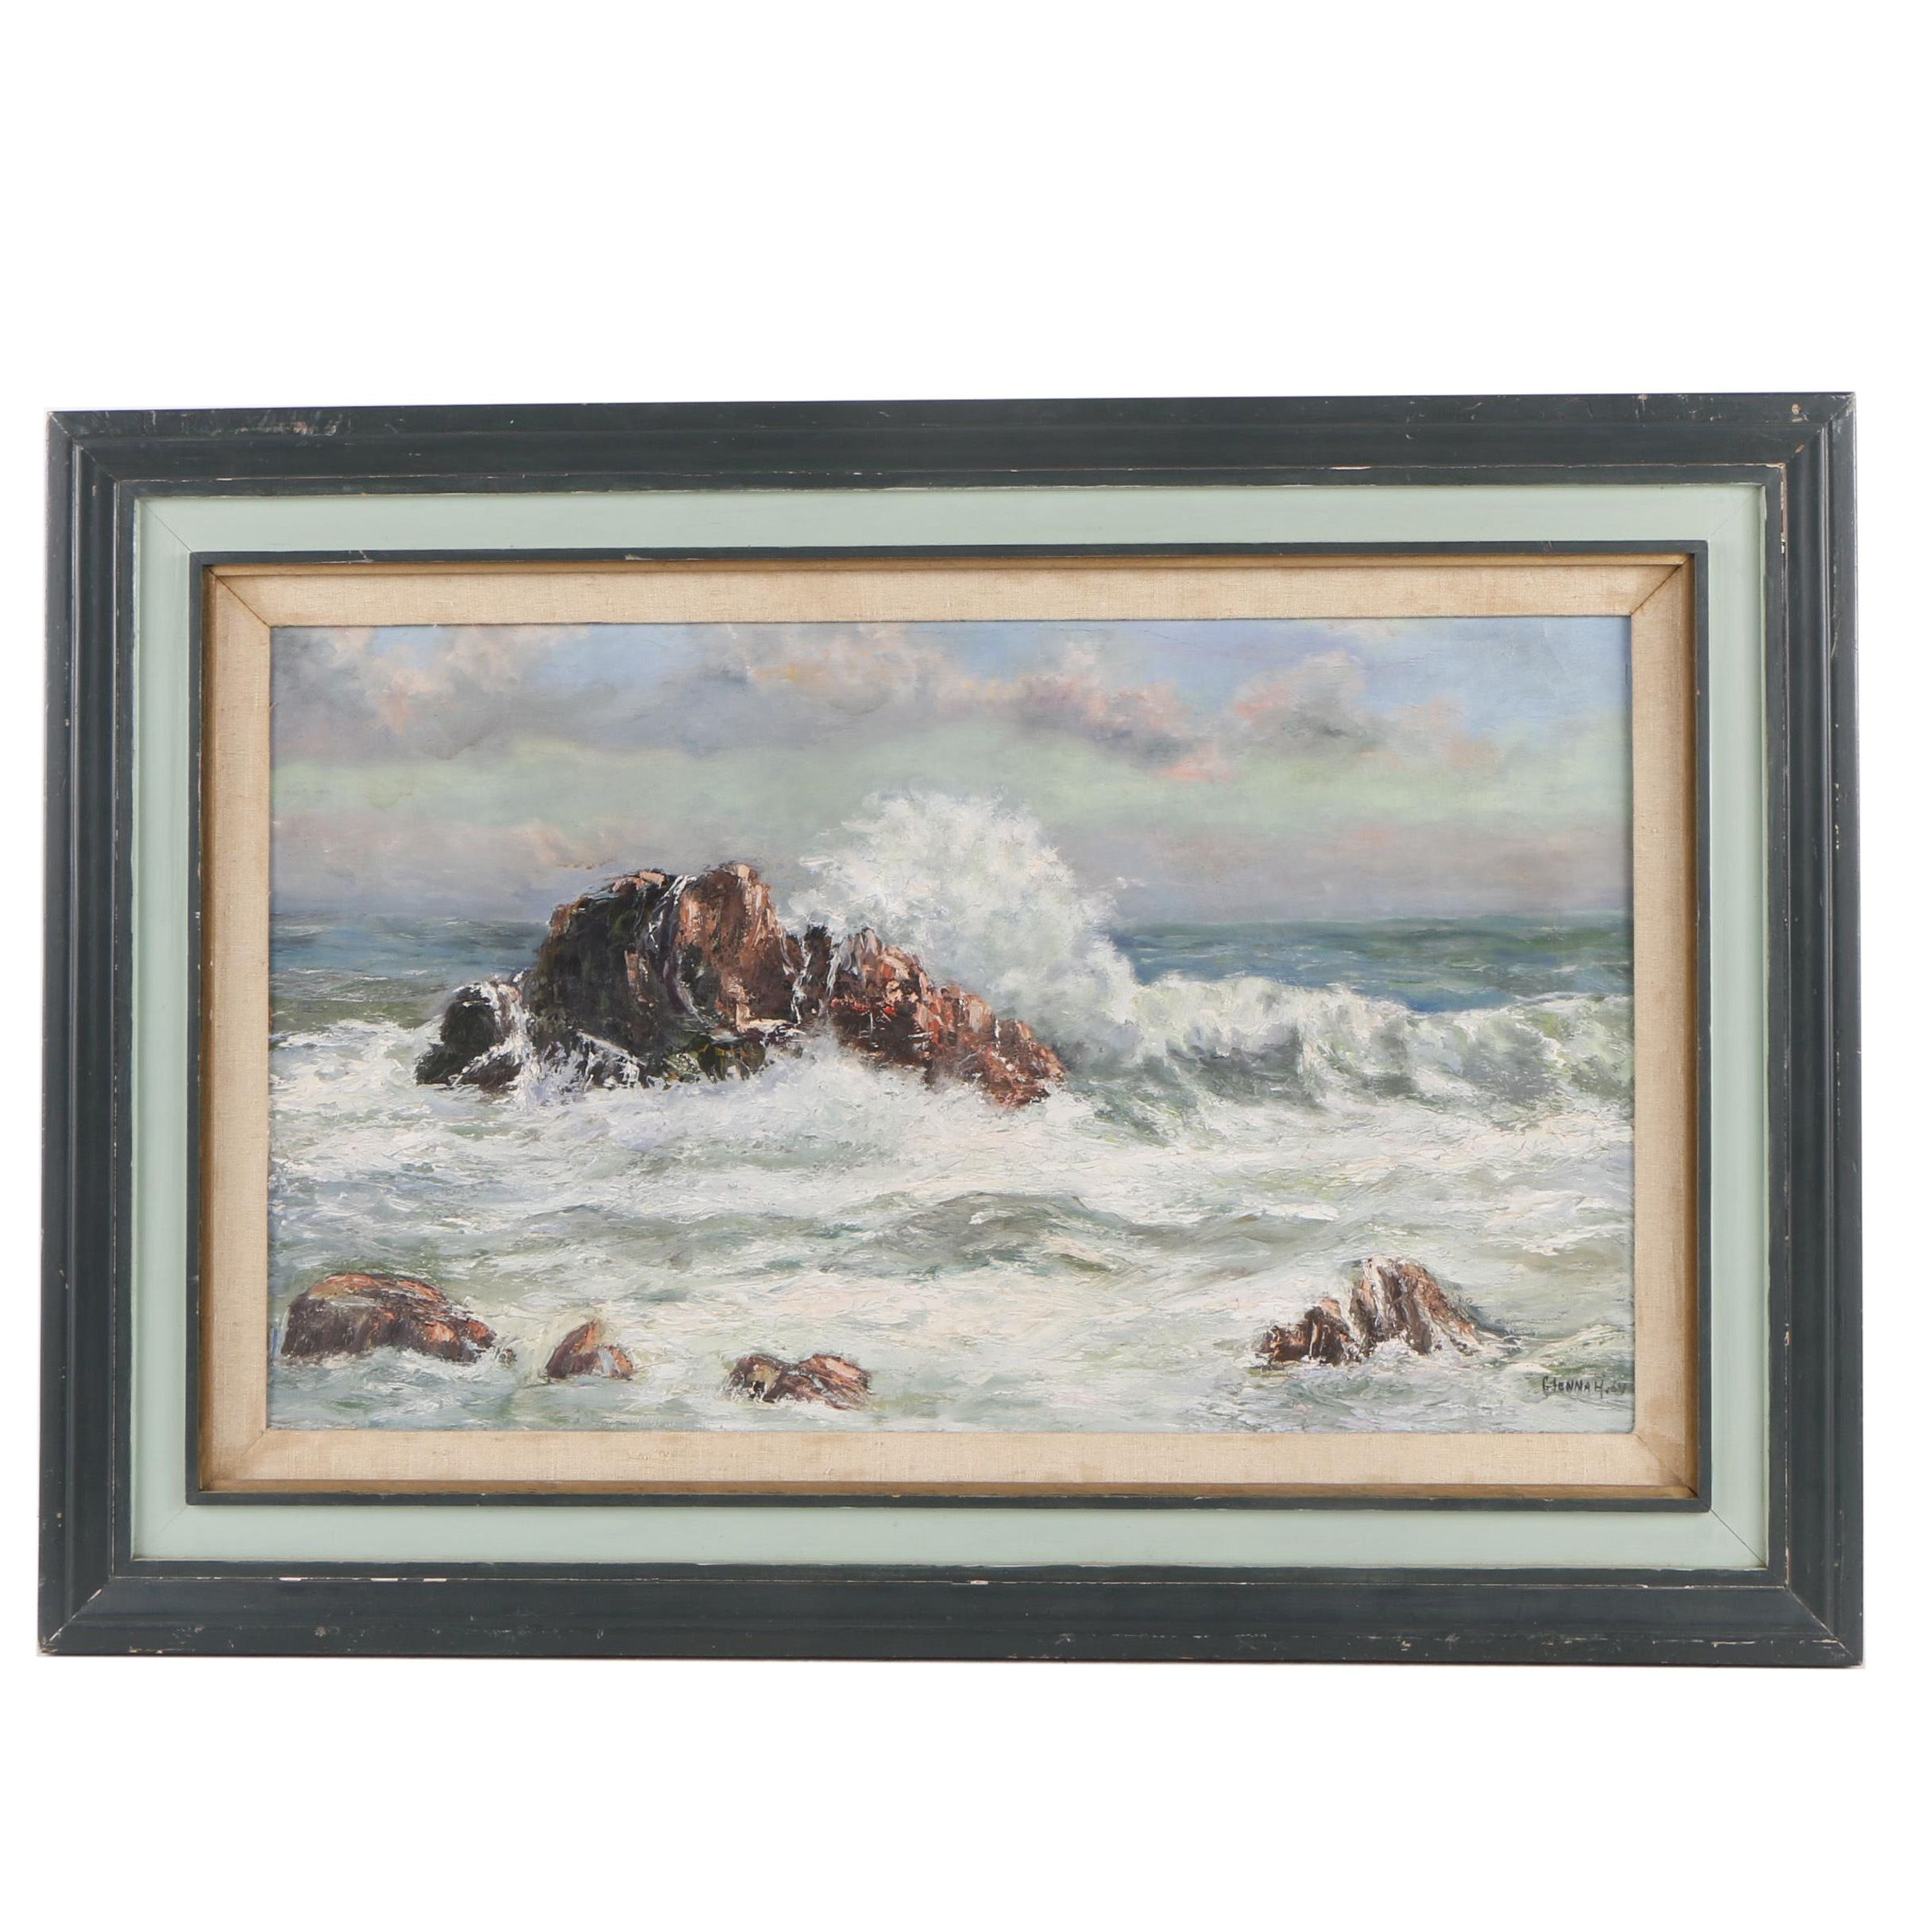 Glenna H. 1964 Oil Painting of Crashing Waves